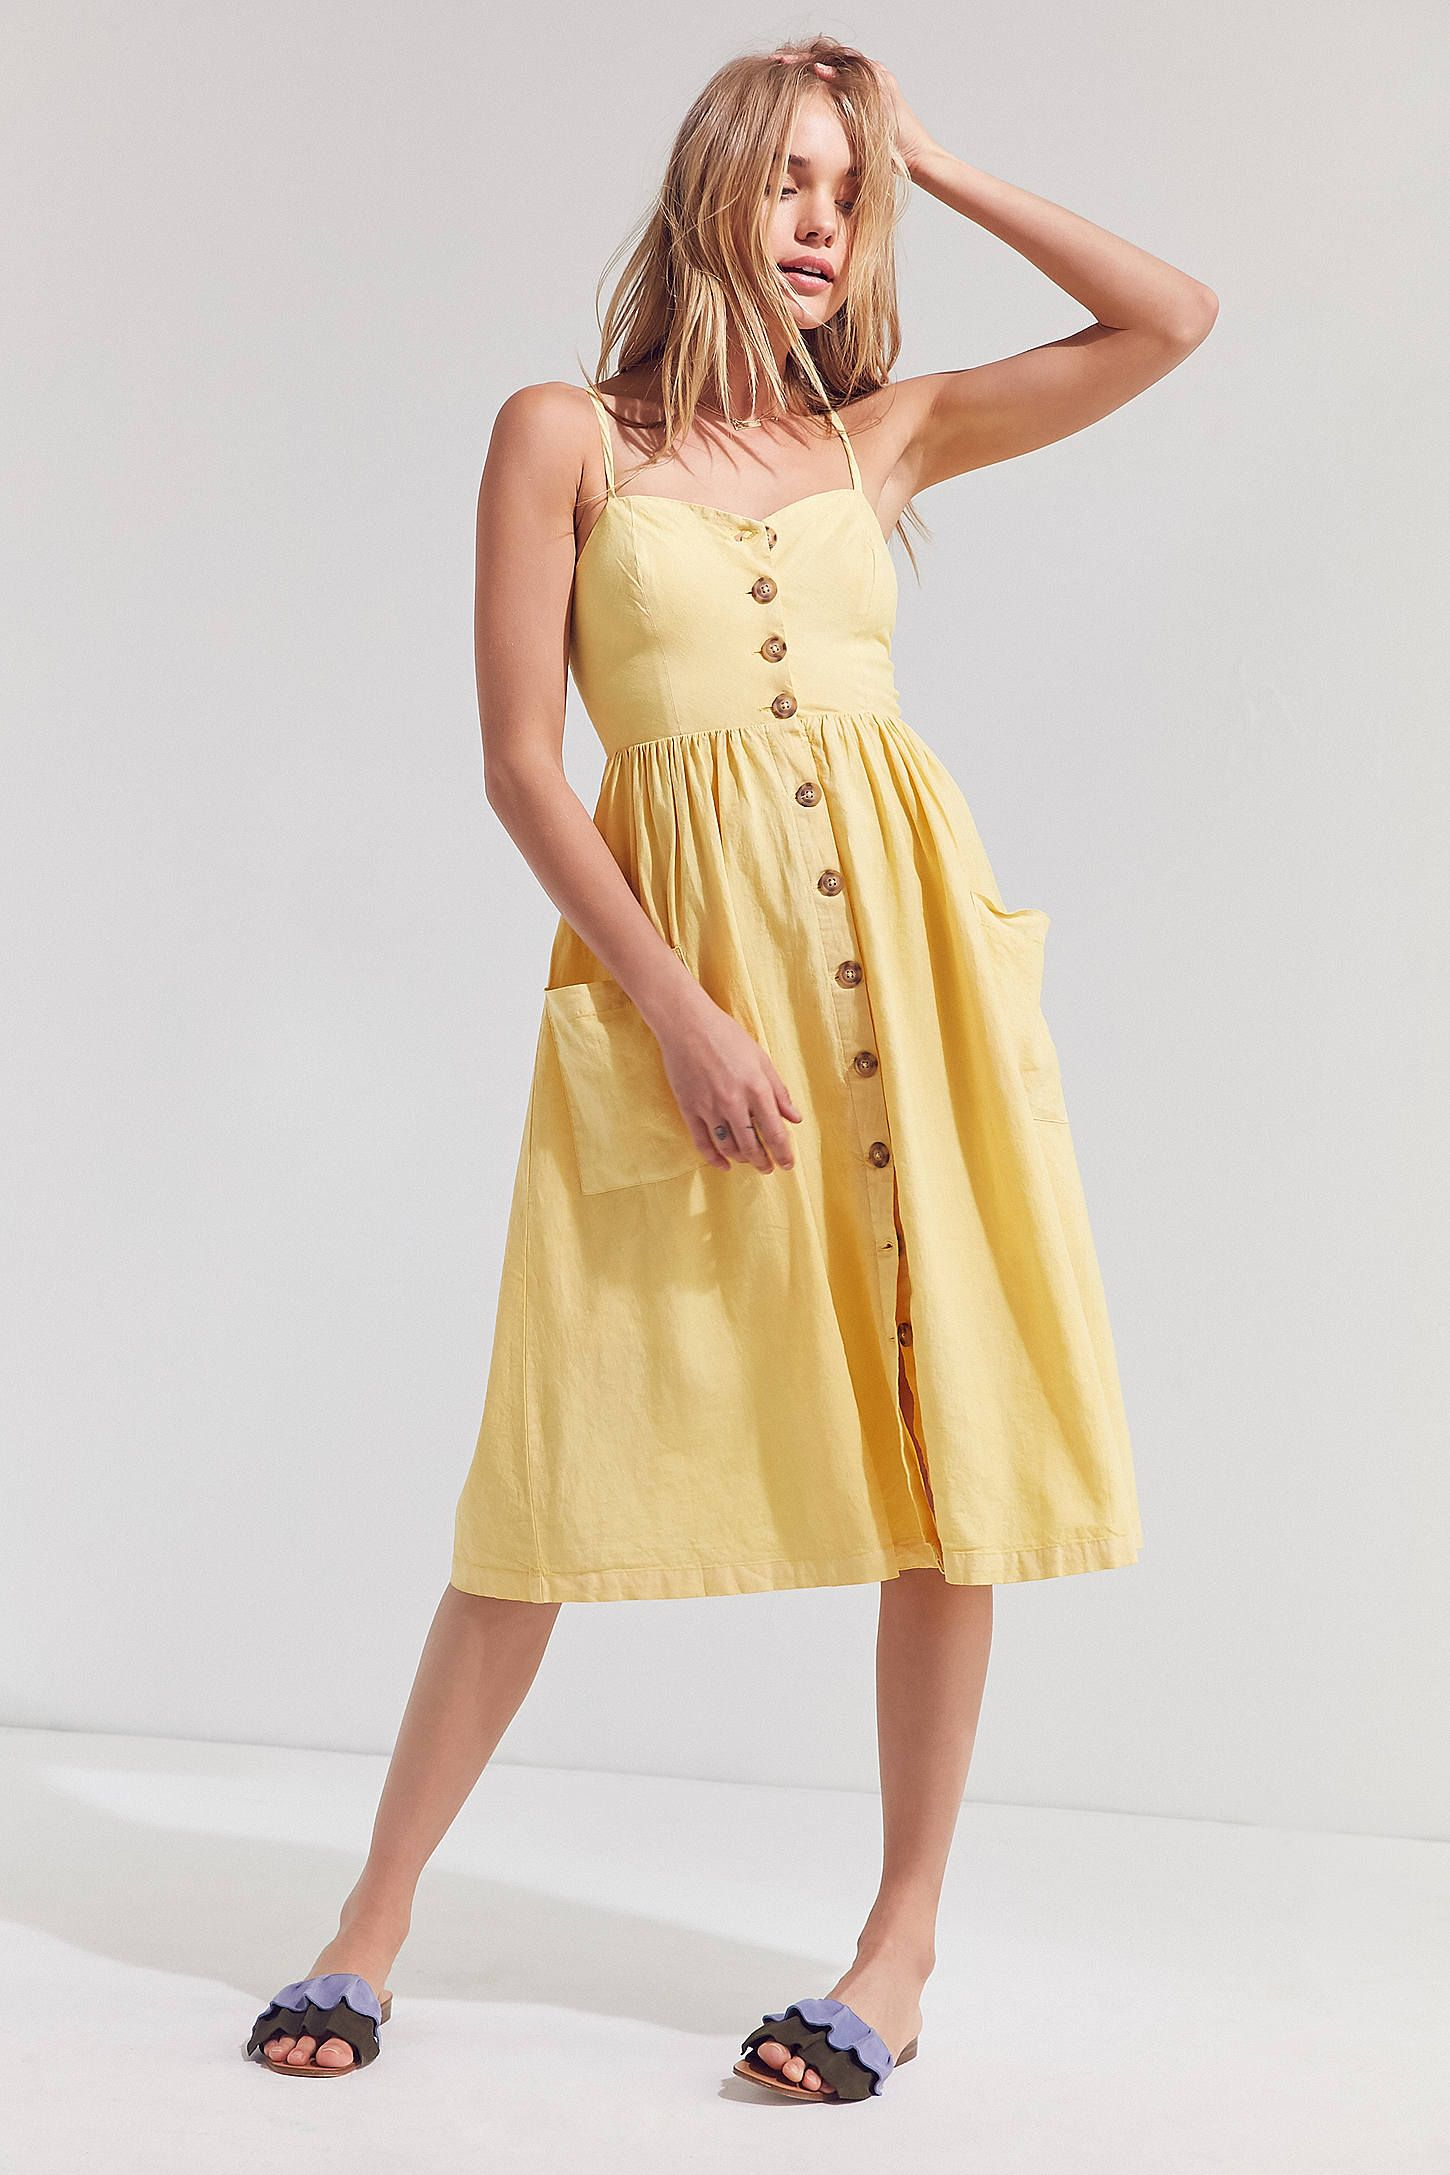 57c69b1f7c9 Shop the Cooperative Emilia Linen Button-Down Midi Dress and more Urban  Outfitters at Urban Outfitters. Read customer reviews